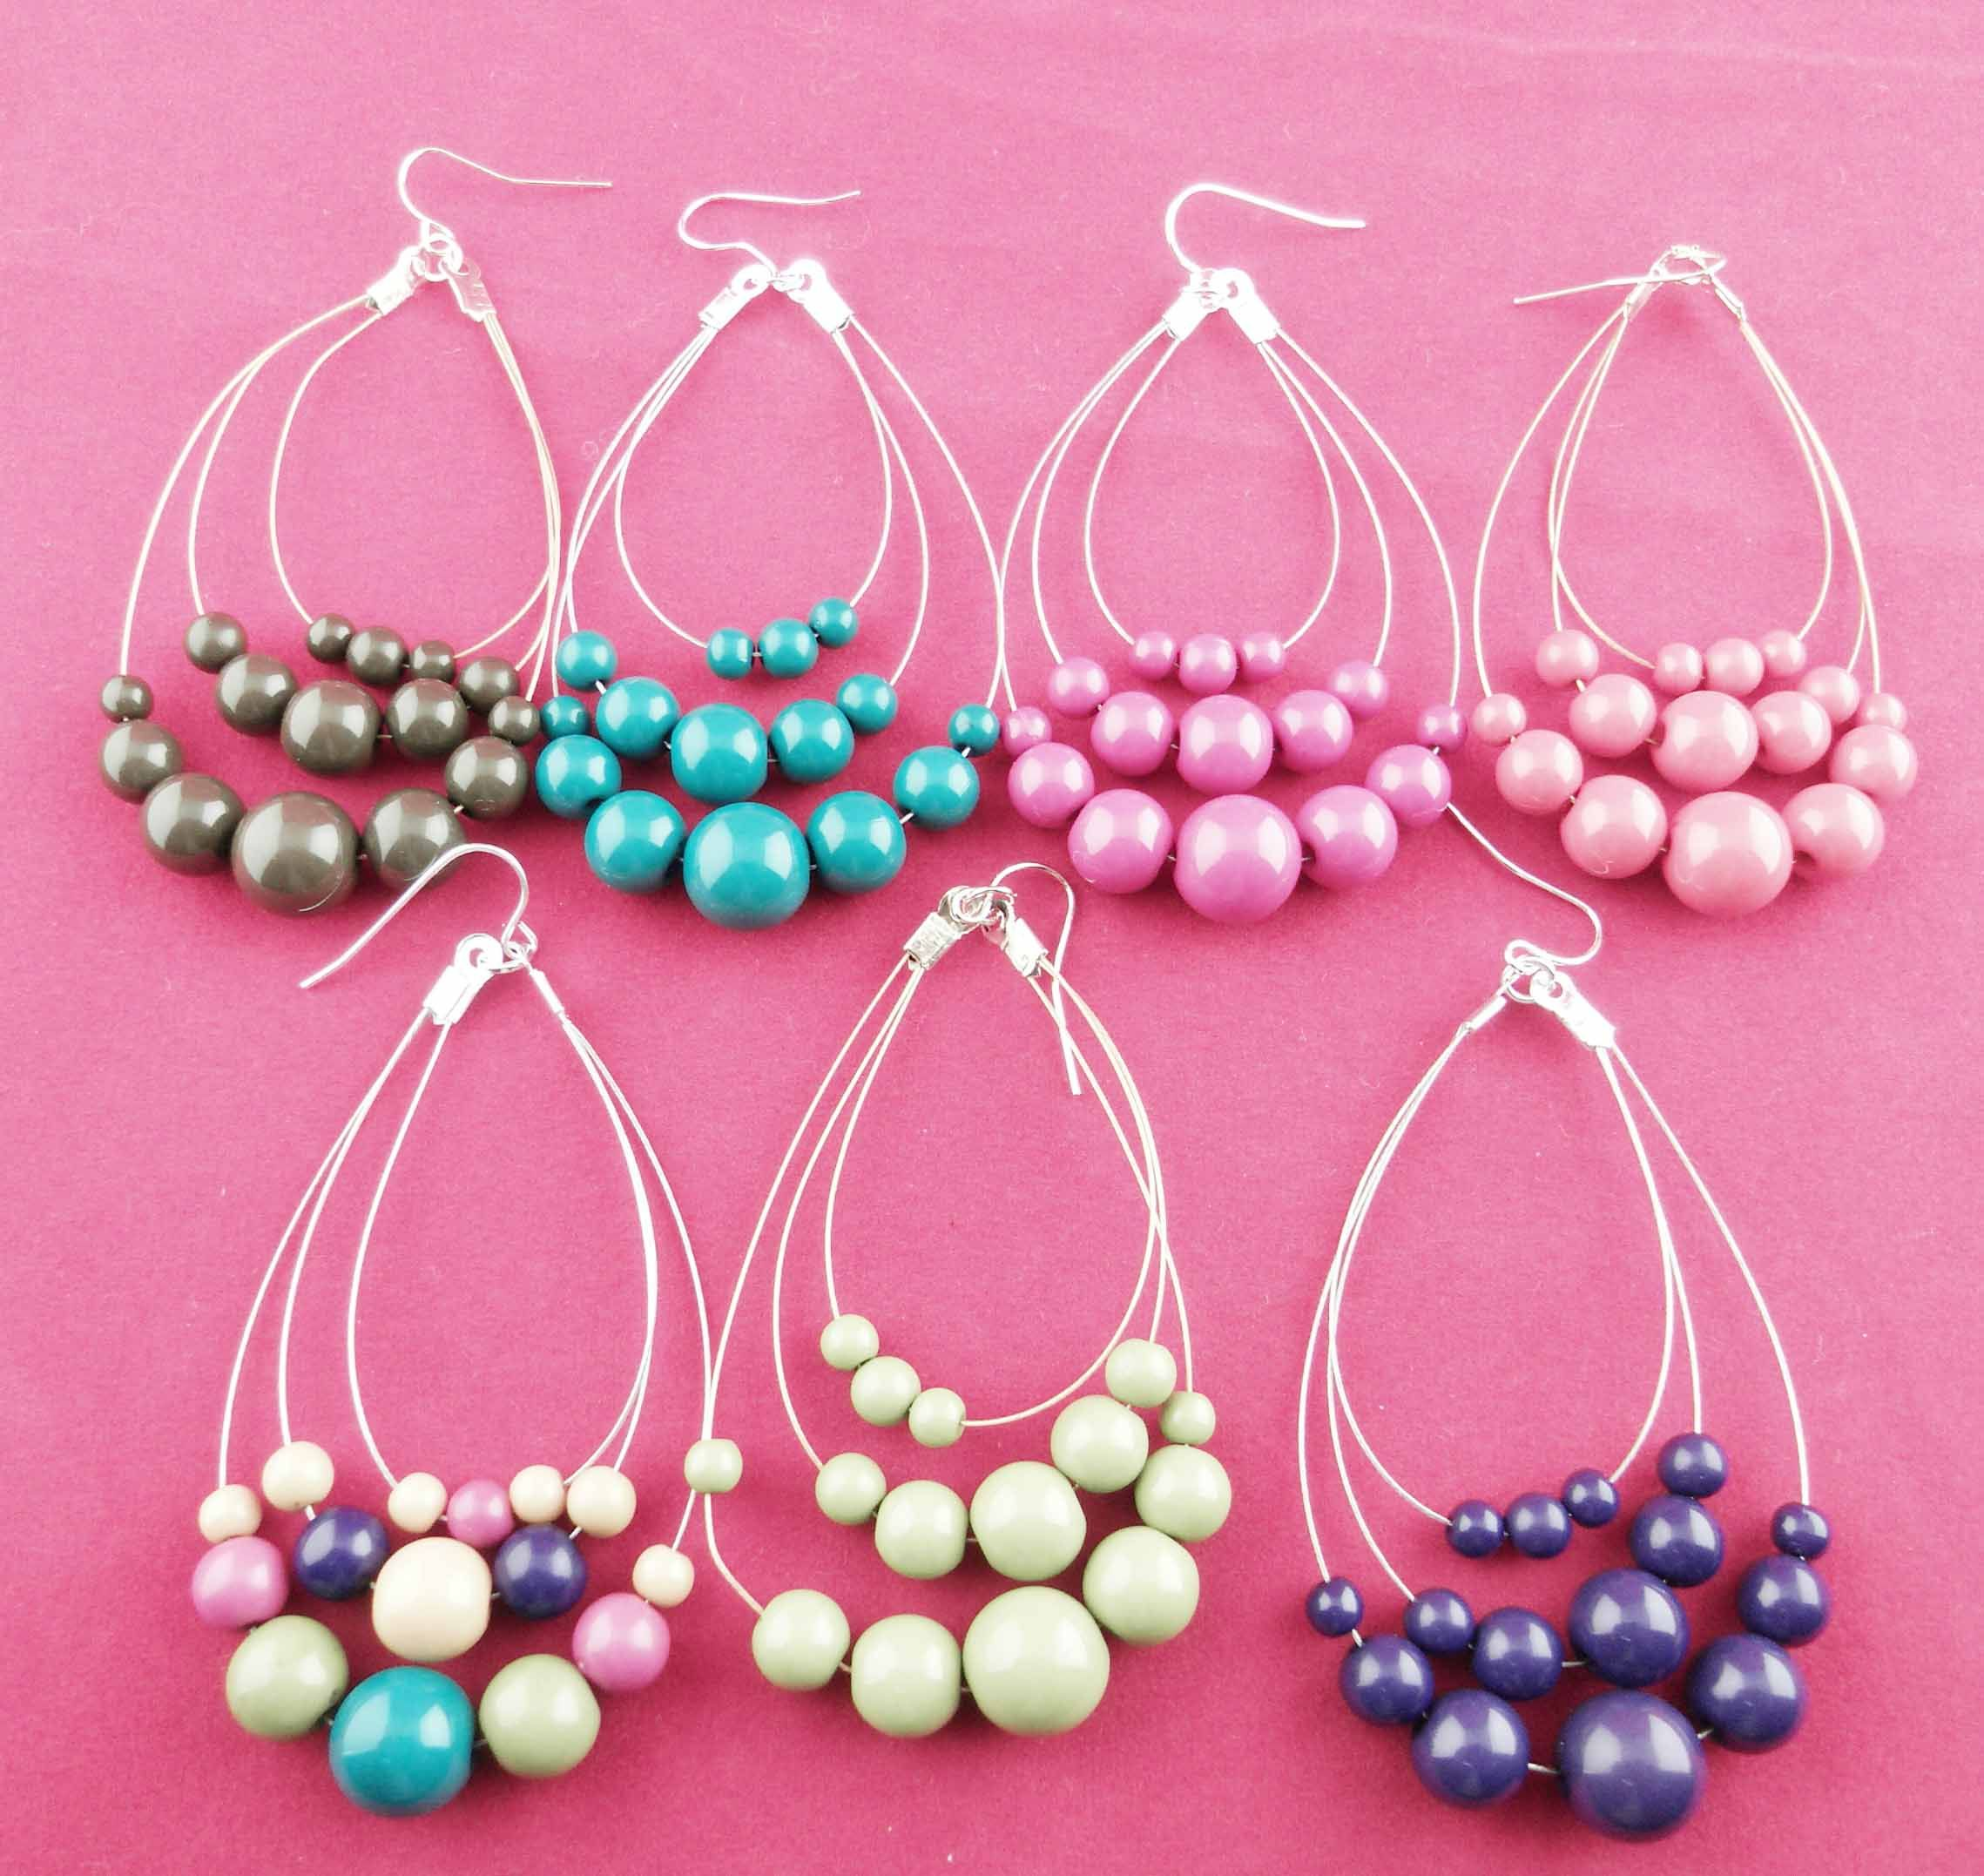 Beaded jewelry jewelry fashion bead earring r080 china beads for making jewelry fandeluxe Images